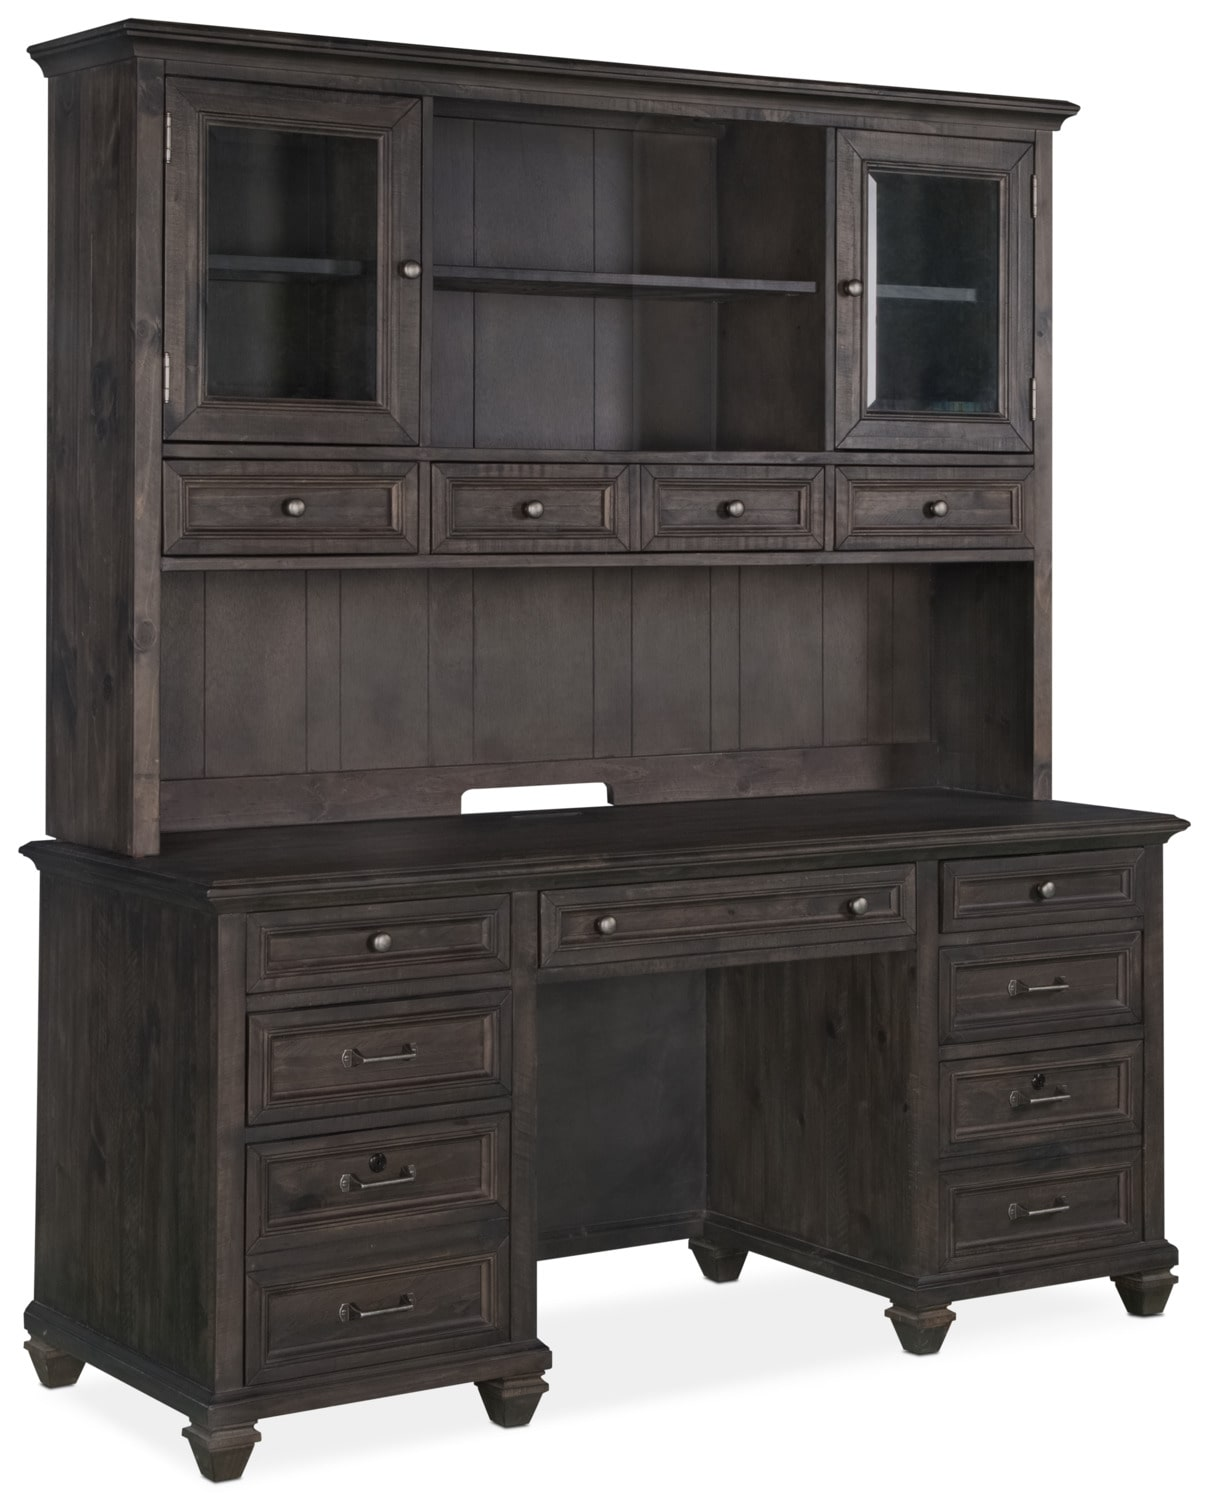 "Calistoga 66"" Desk with Hutch"